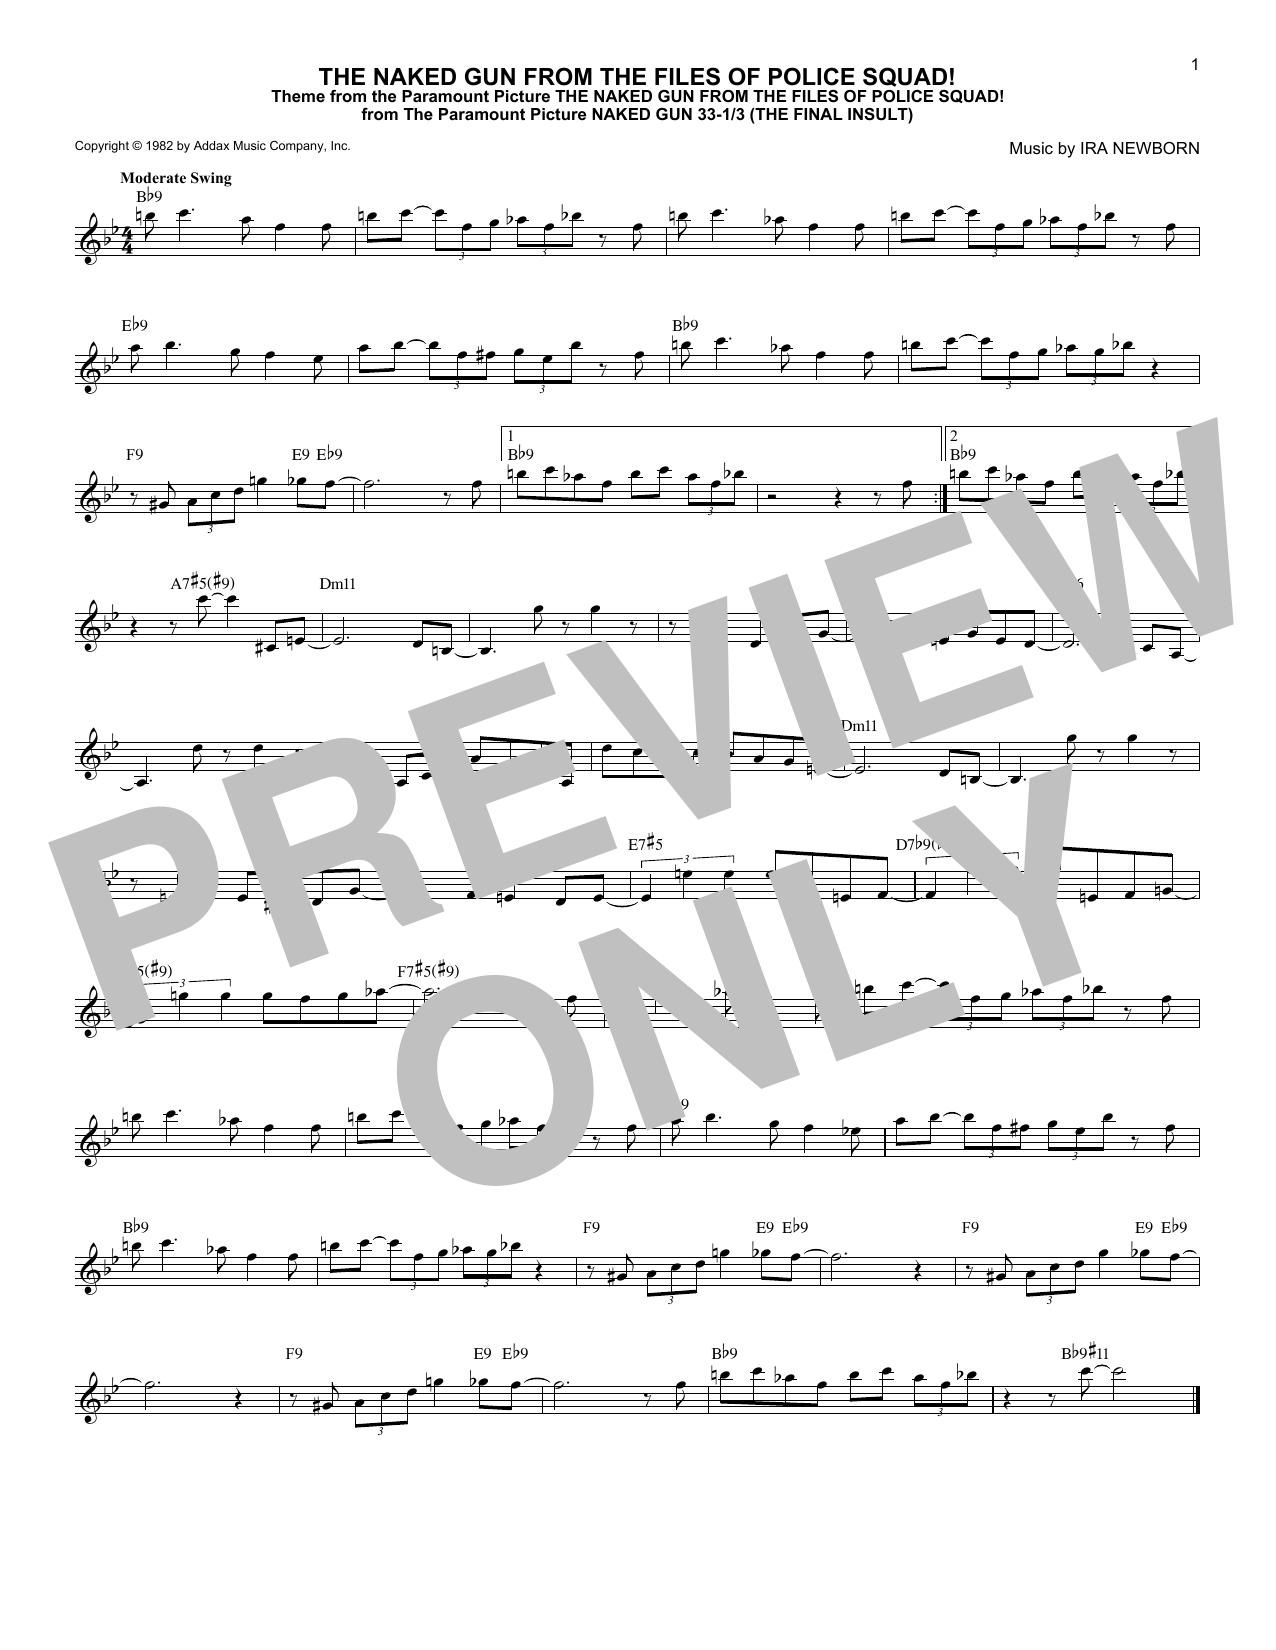 Download Ira Newborn 'The Naked Gun From The Files Of Police Squad!' Digital Sheet Music Notes & Chords and start playing in minutes